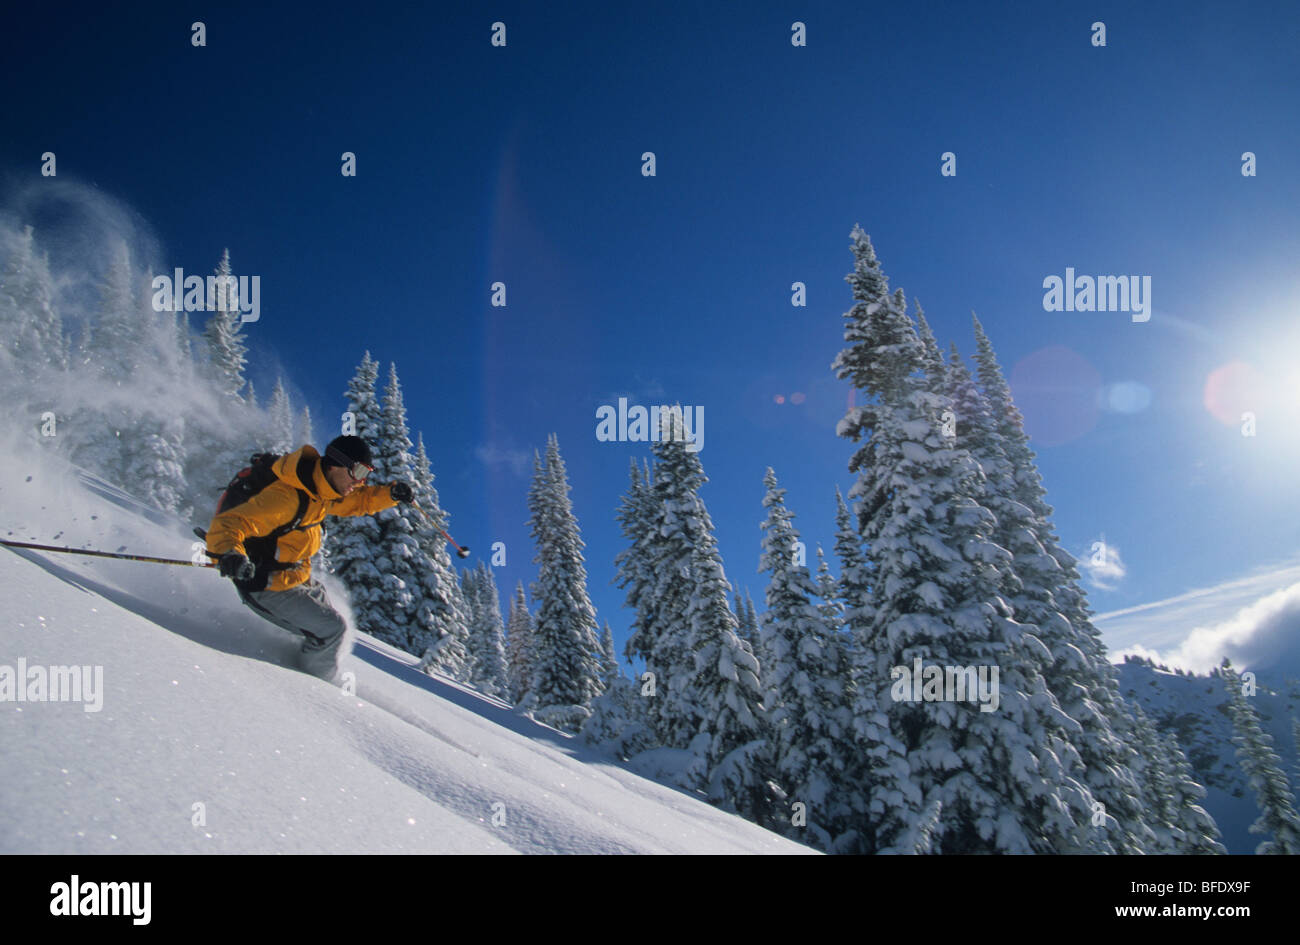 A skier making some powder turns at Cat Powder, Revelstoke, British Columbia, Canada - Stock Image